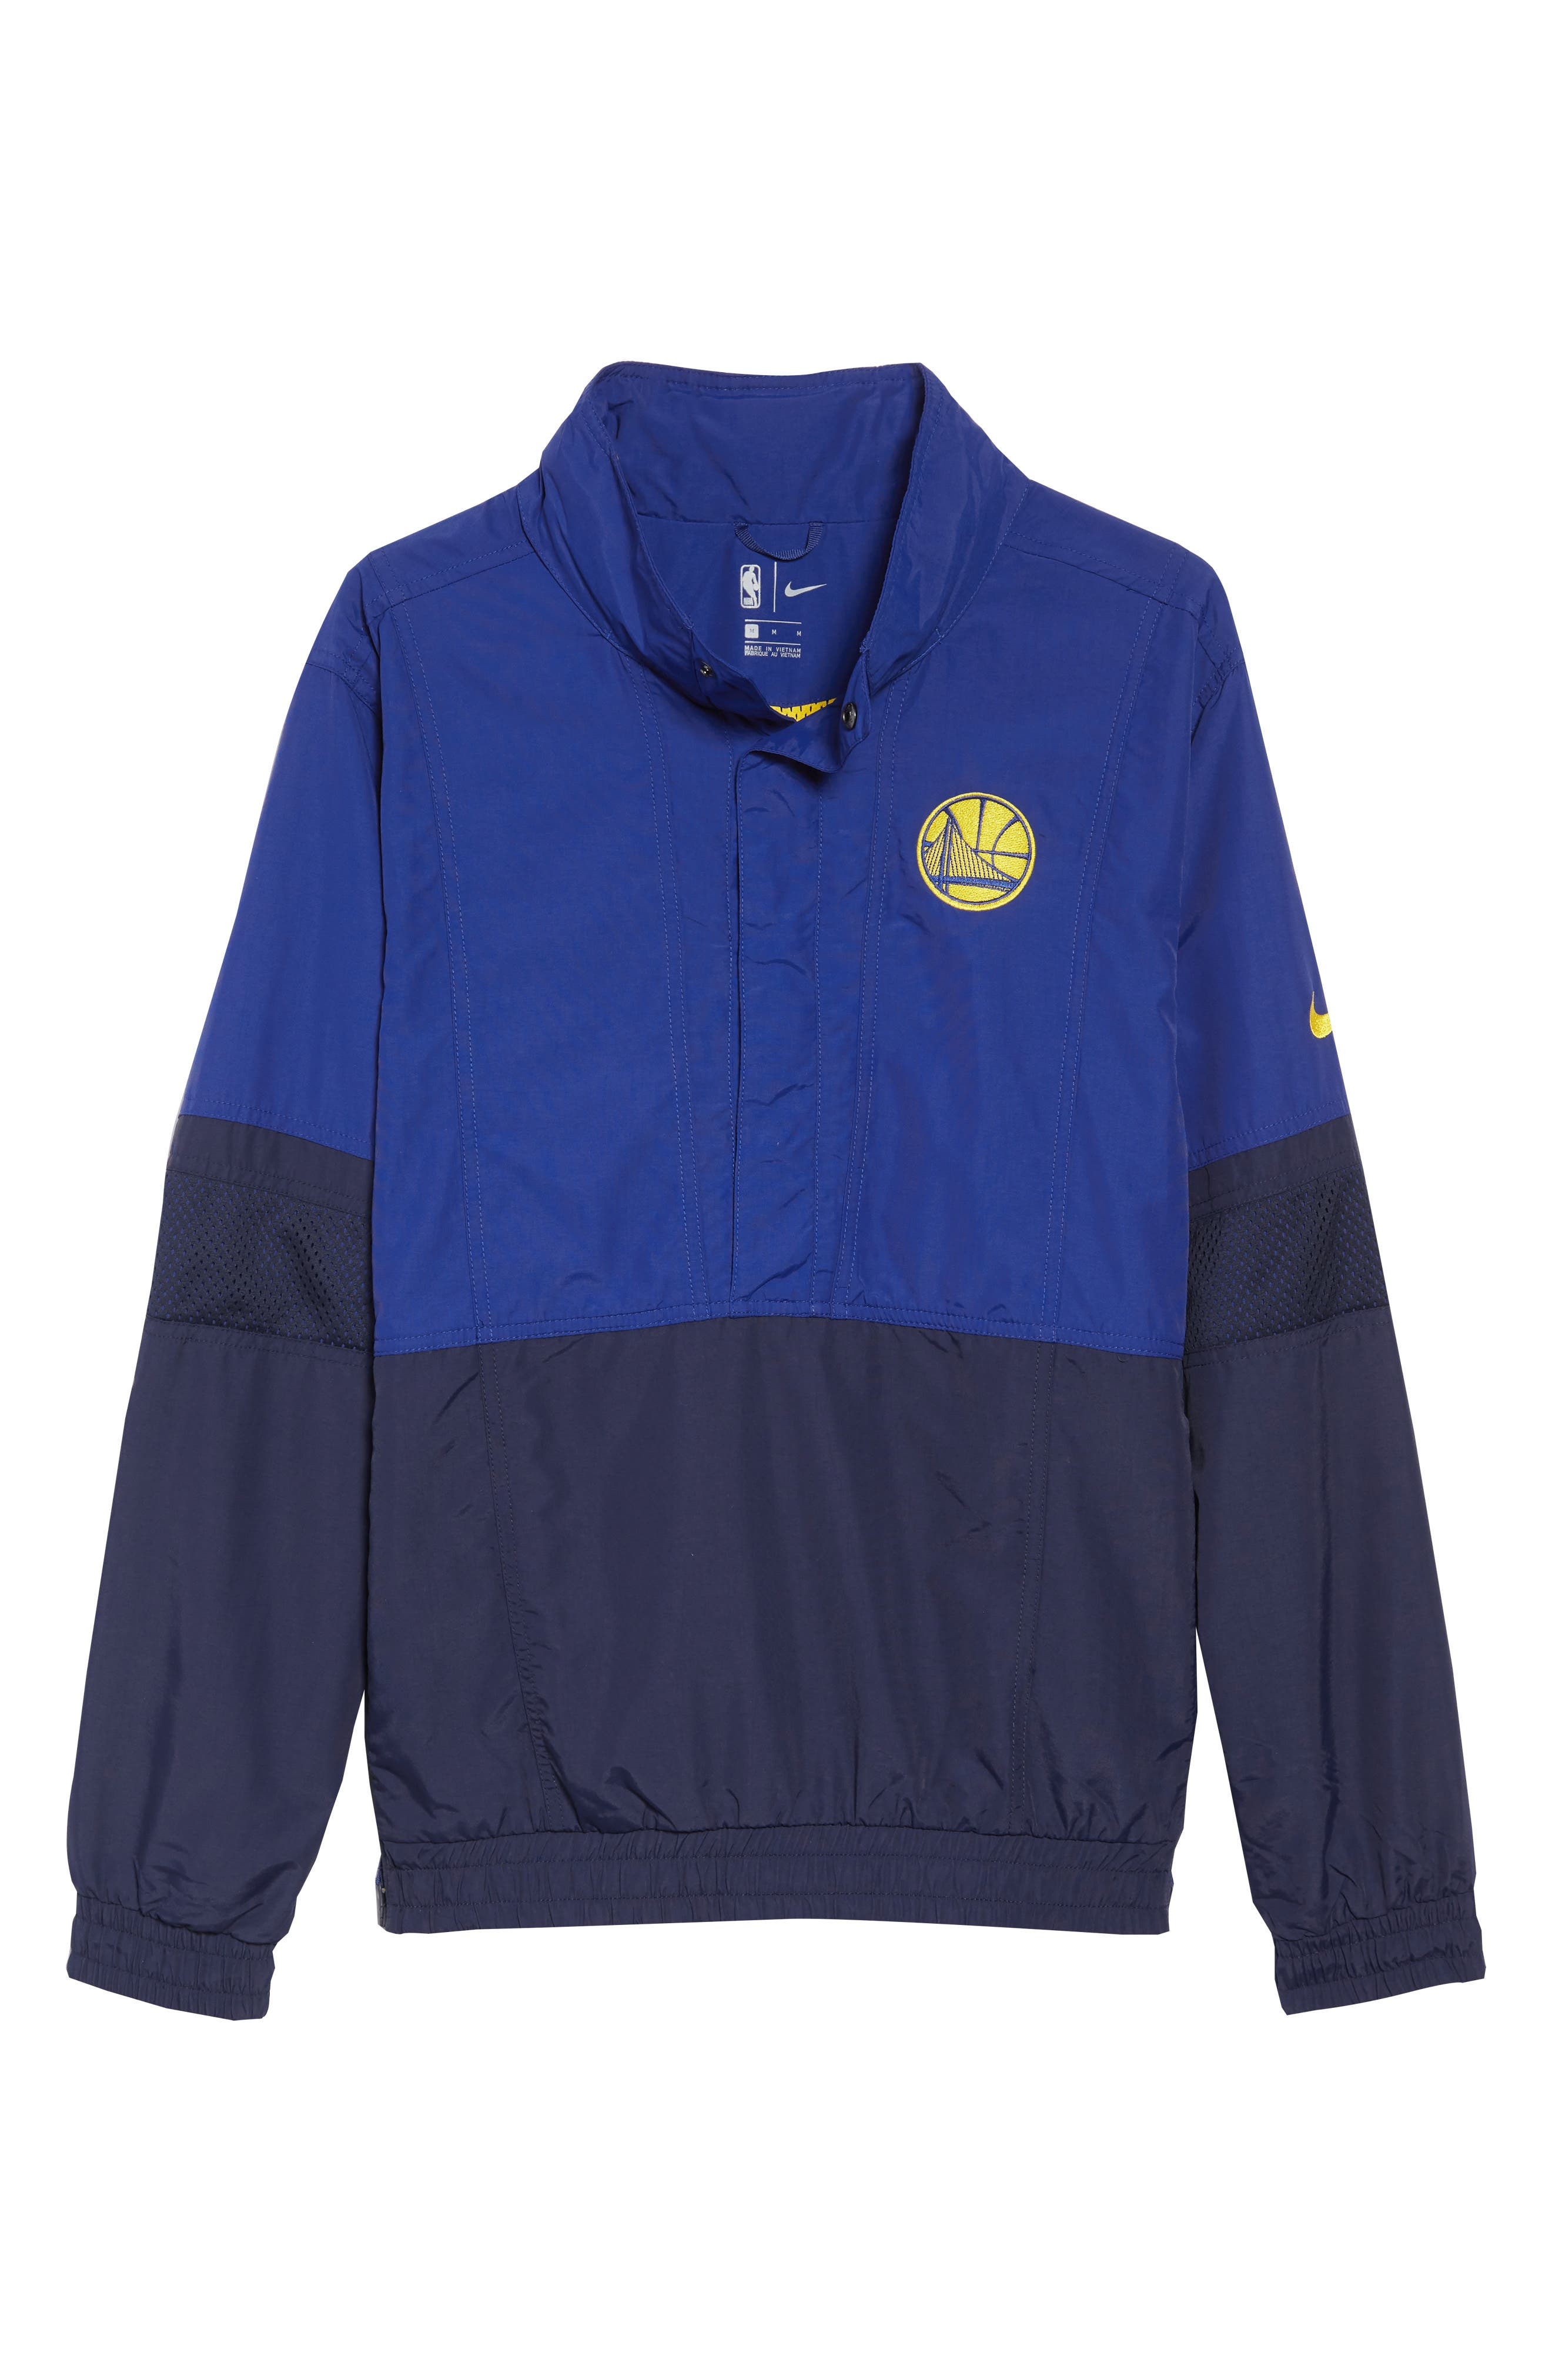 Golden State Warriors Courtside Warm-Up Jacket,                             Alternate thumbnail 6, color,                             RUSH BLUE/ NAVY/ AMARILLO